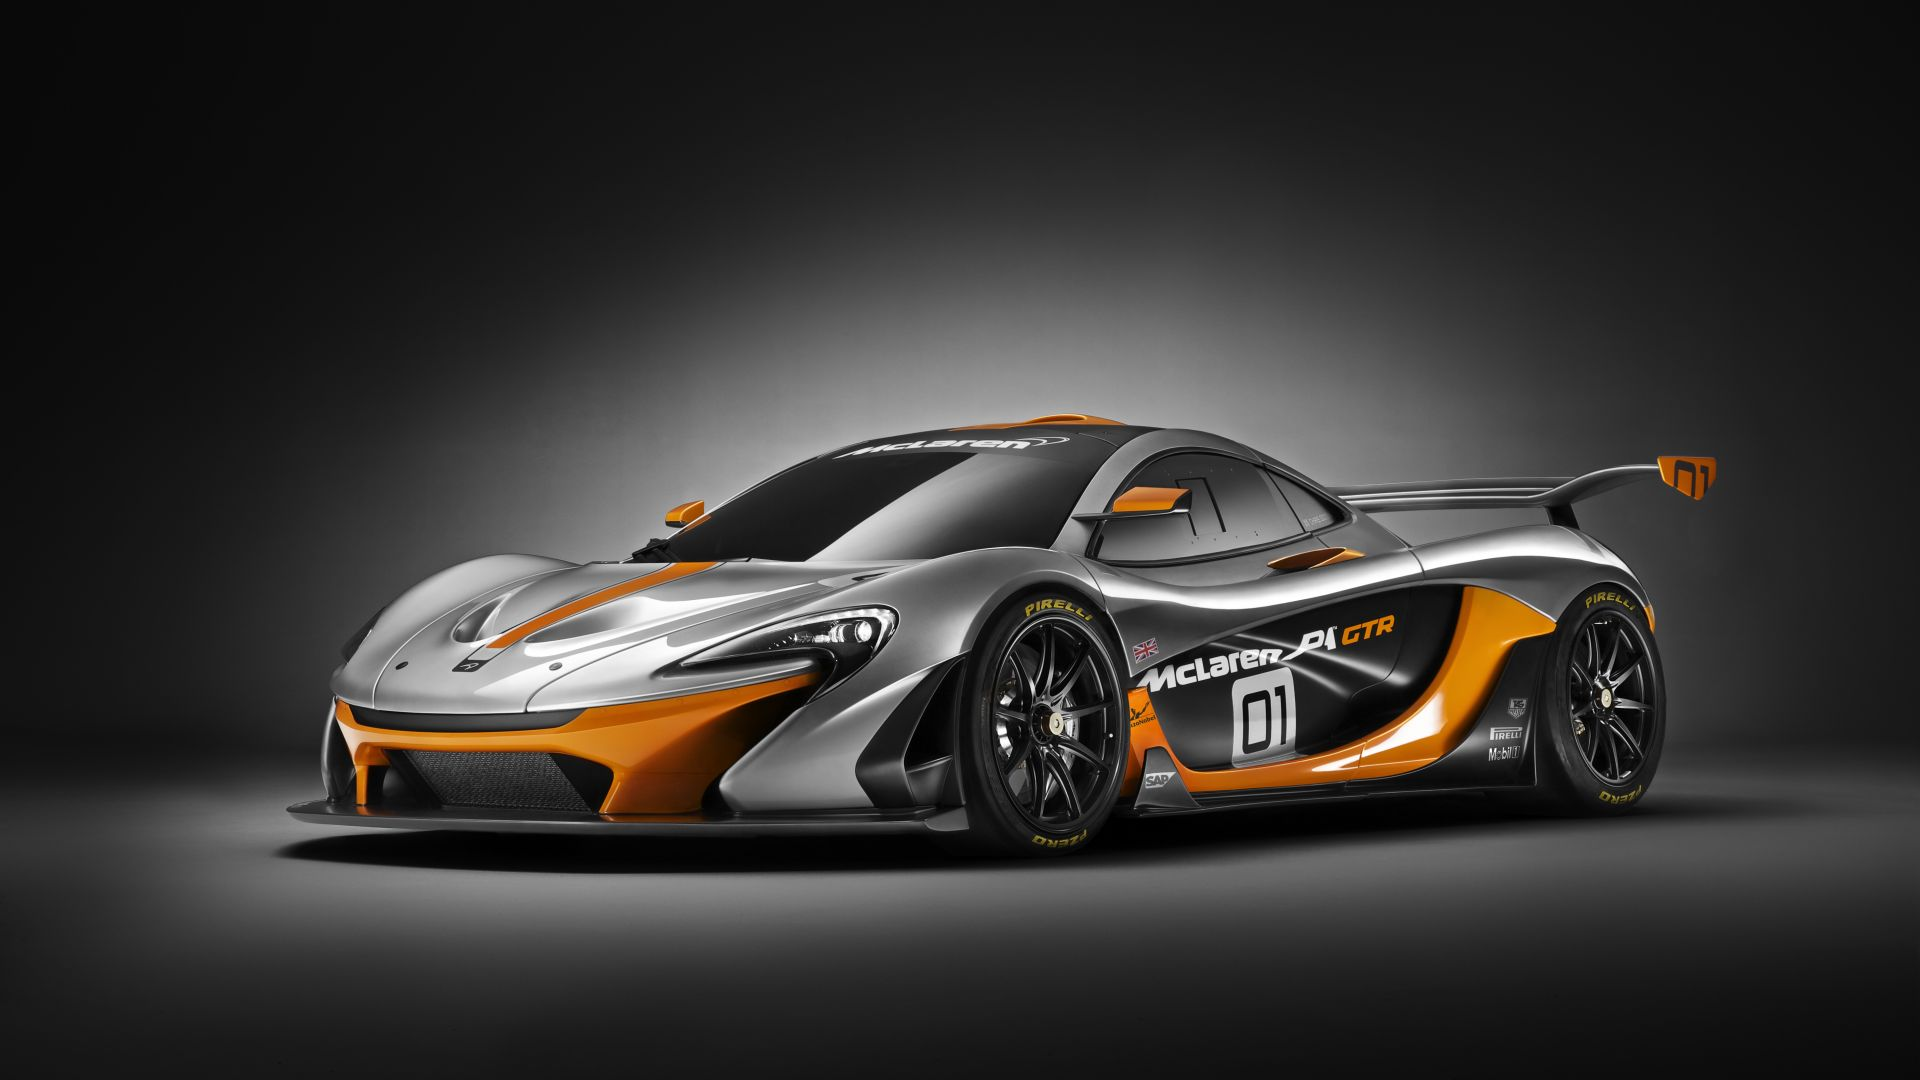 McLaren P1 GTR, hybrid, hypercar, coupe, review, buy, rent, test drive (horizontal)